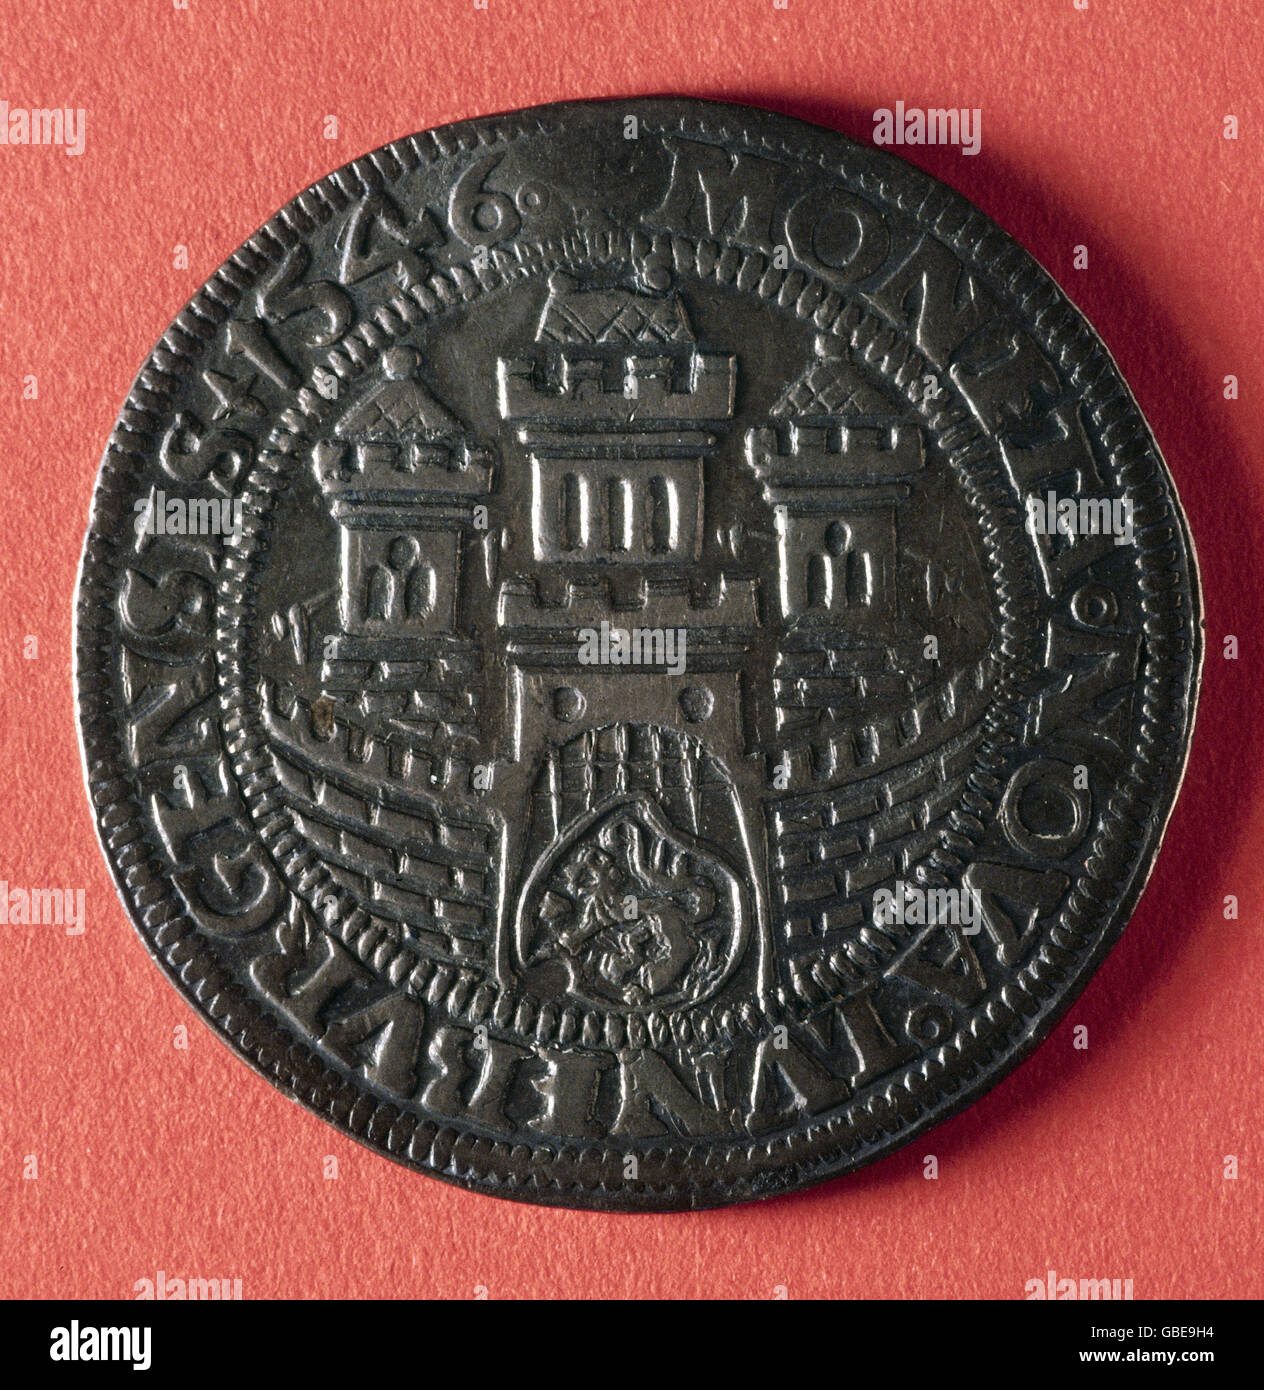 money / finance, coins, Germany, Witte coinage - Hanseatic cities, Lüneburg, 1546, Additional-Rights-Clearences - Stock Image